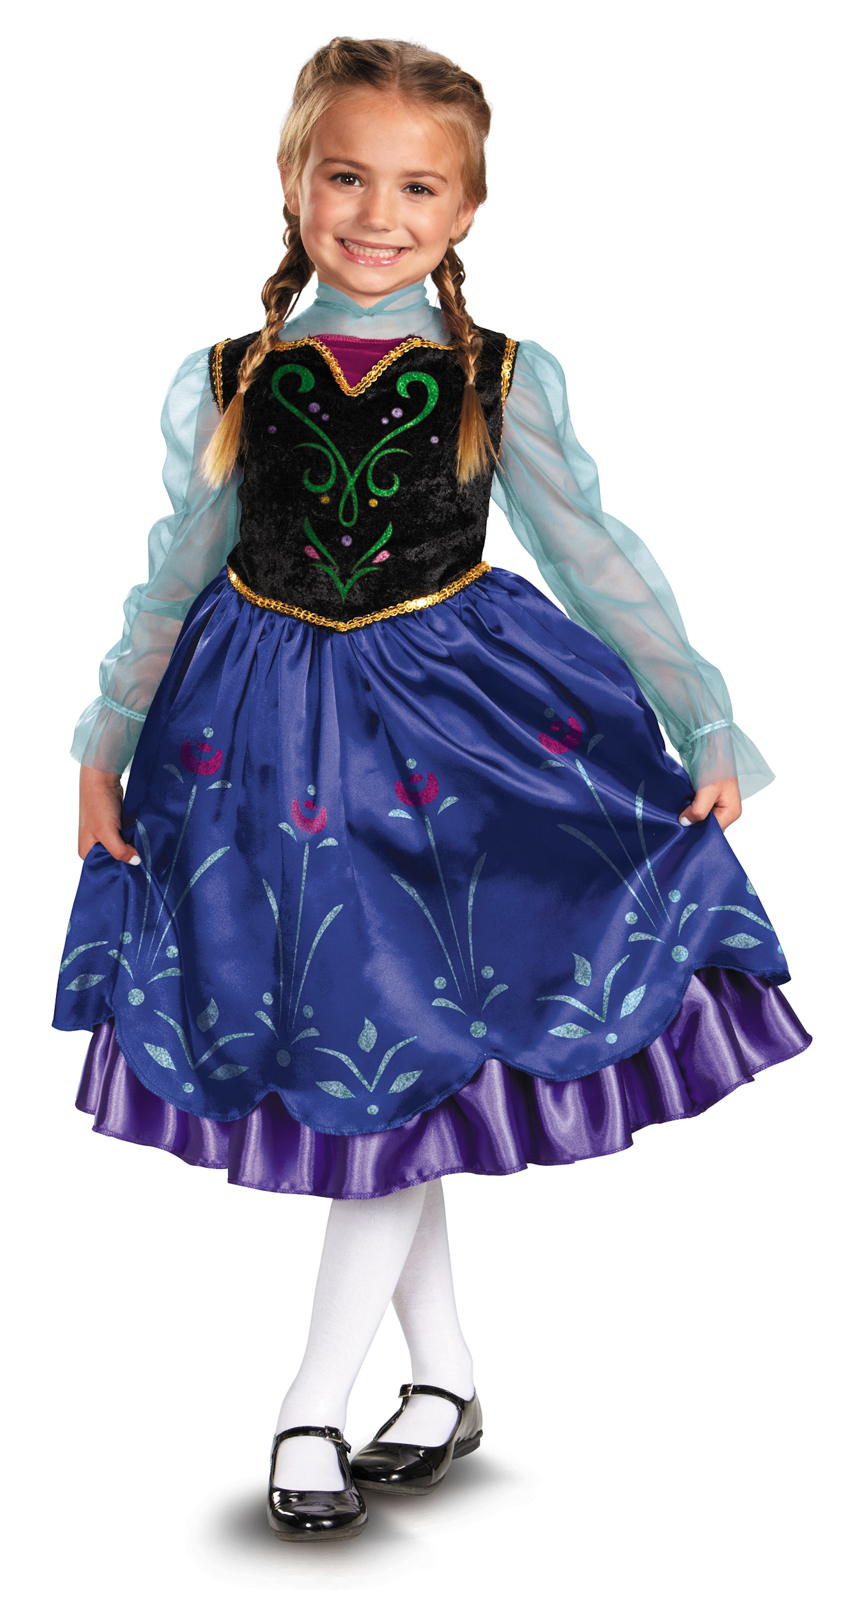 Disney Frozen Deluxe Anna Toddler / Child Costume  sc 1 st  Disney World Enthusiast & Mickeyu0027s Not So Scary Halloween Party Costumes Sale | Disney World ...